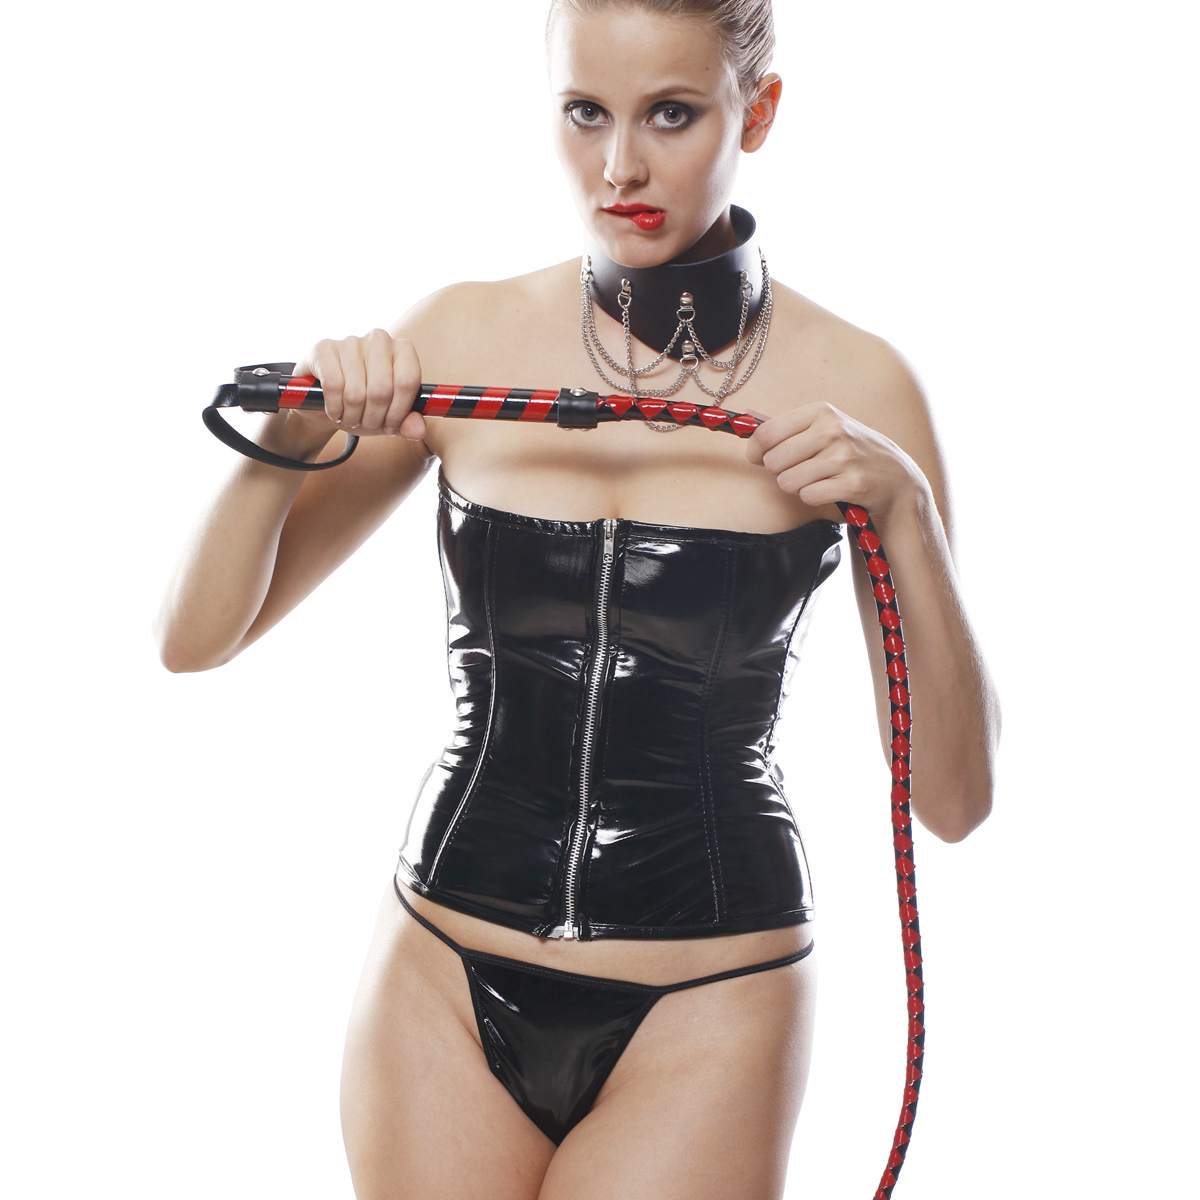 Punk queen body shaping split set knout collar